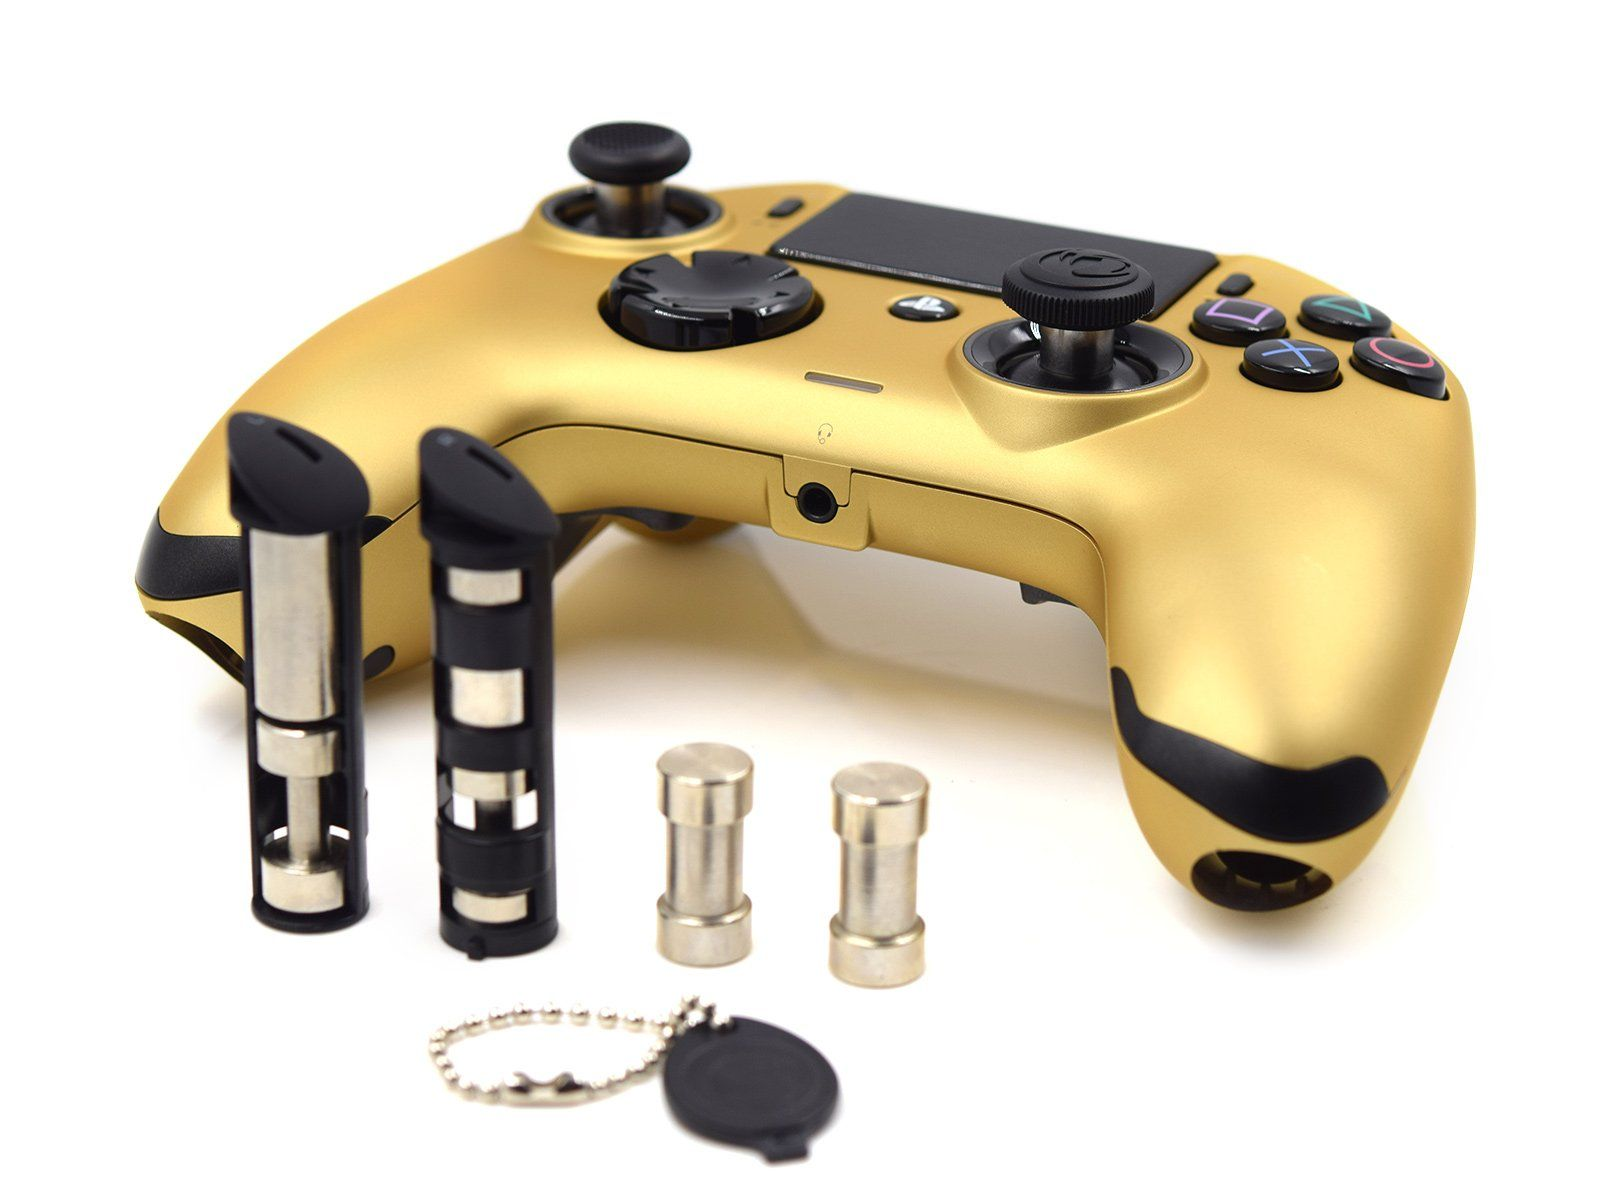 Nacon Revolution Pro Controller With Accessories